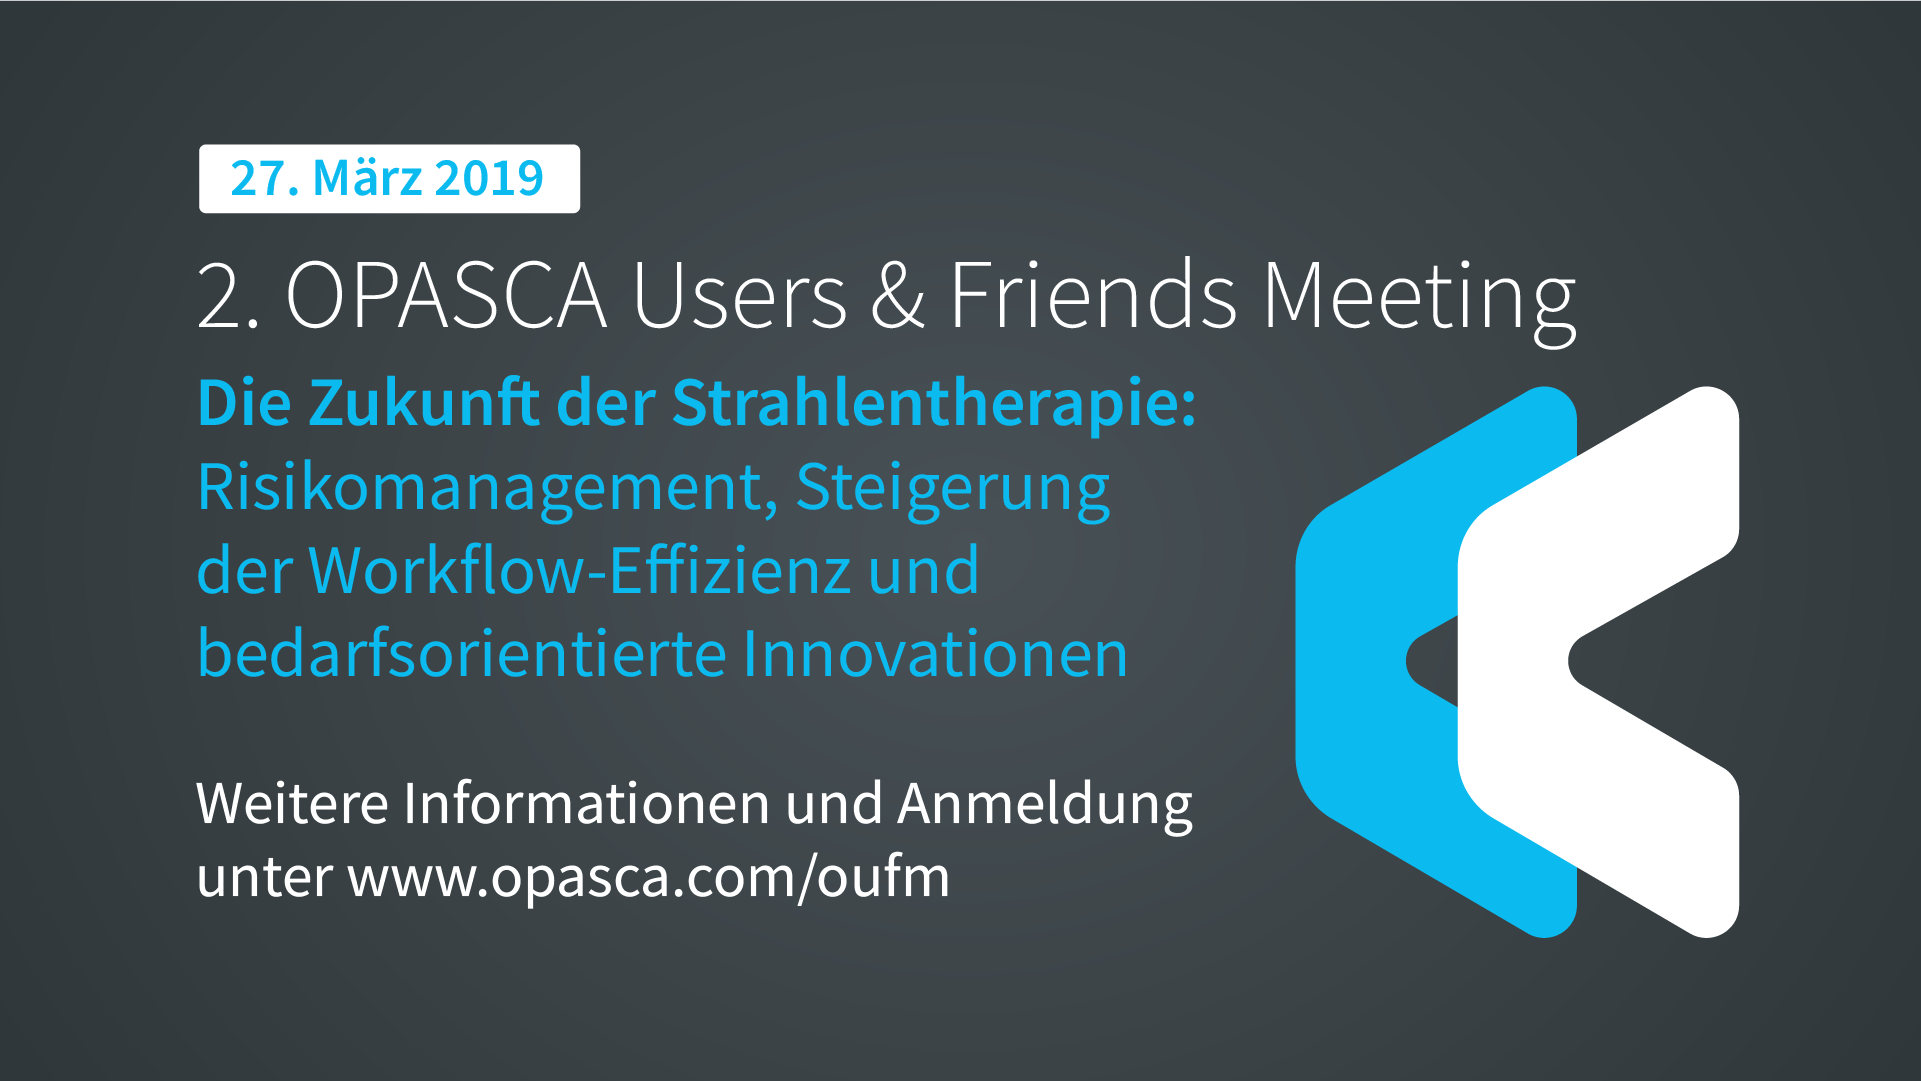 OPASCA Users & Friends Meeting 2019 OPASCA Events Veranstaltungen